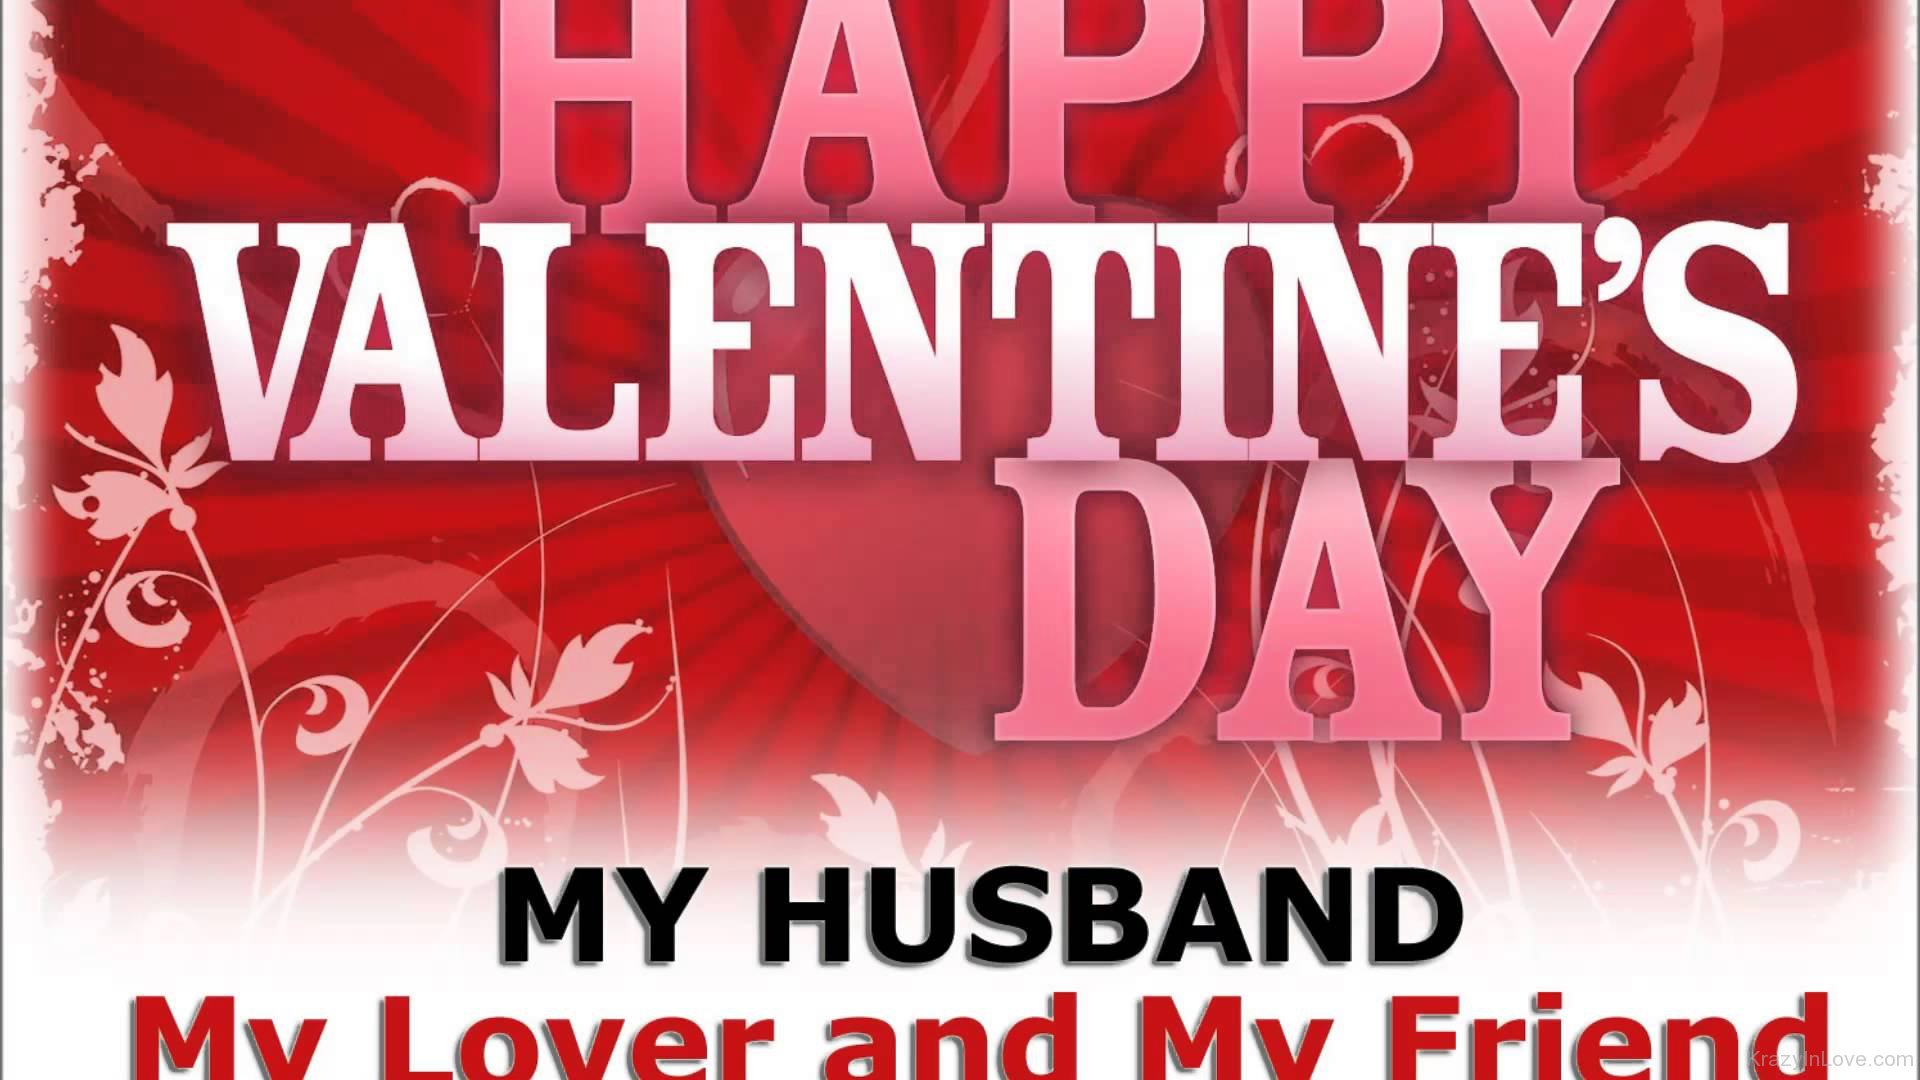 Happy Valentines Day My Husband My Lover And My Friend